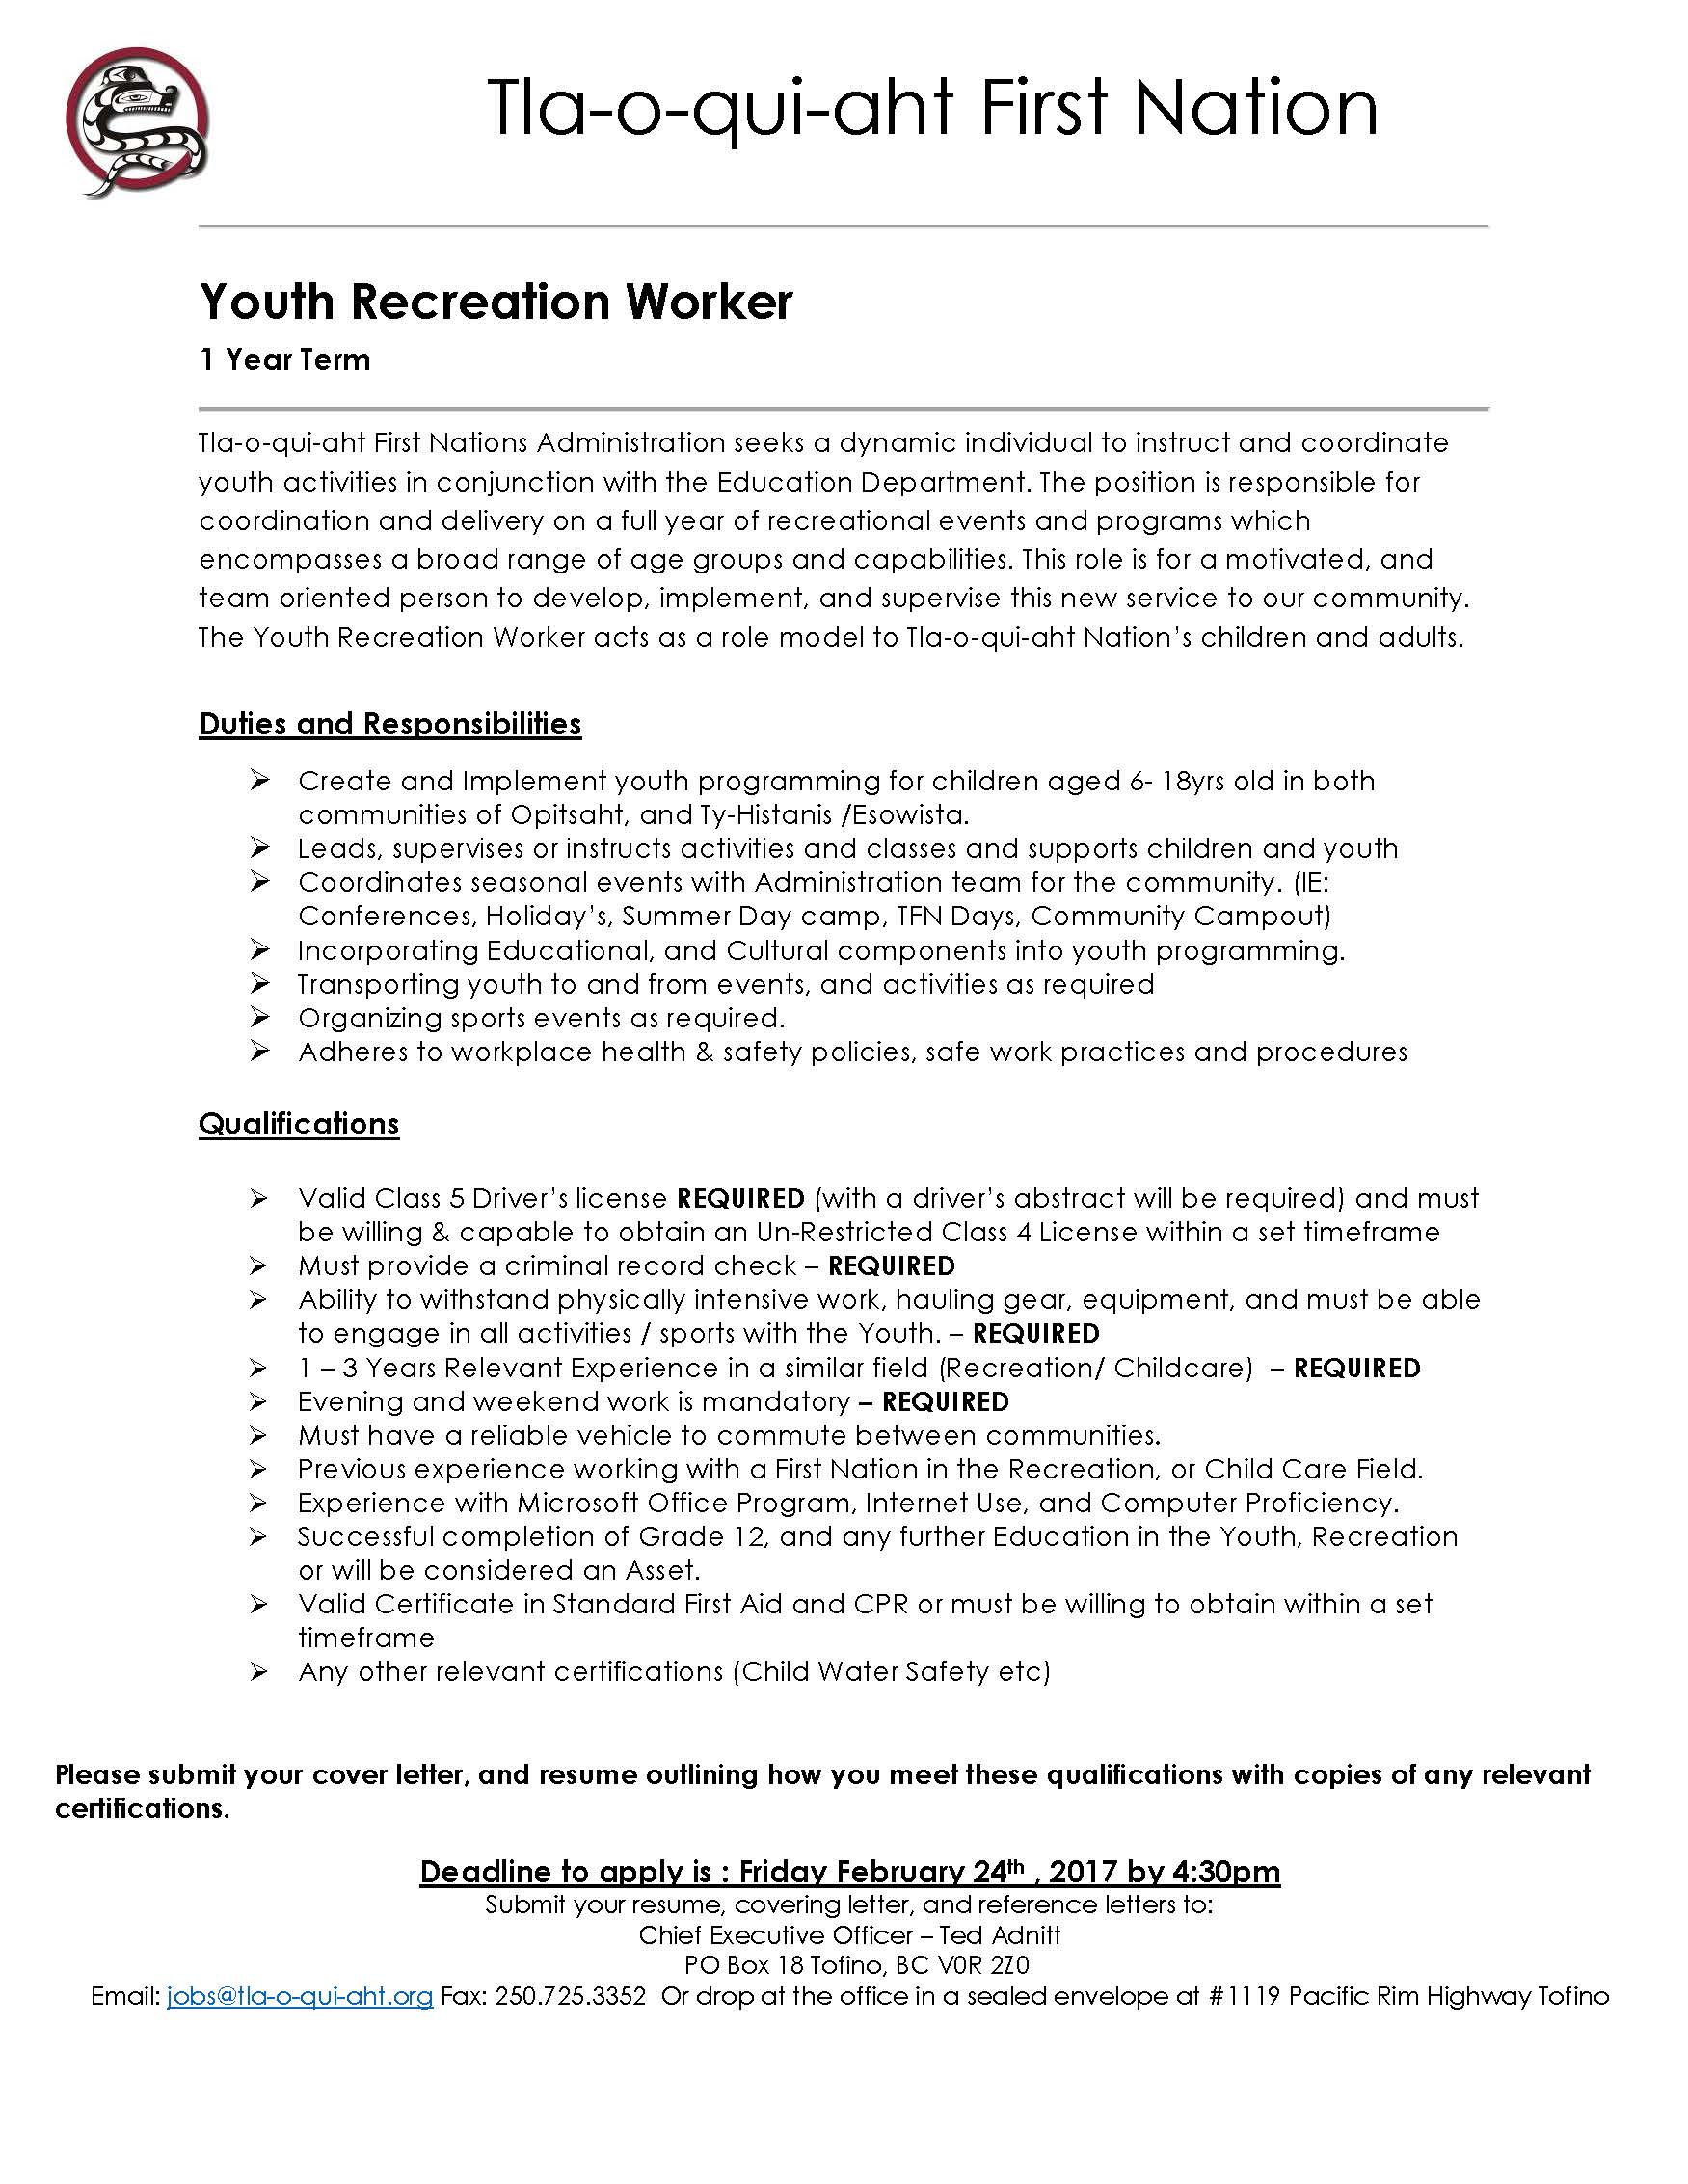 contemporary worship leader cover letter my best friend essay for